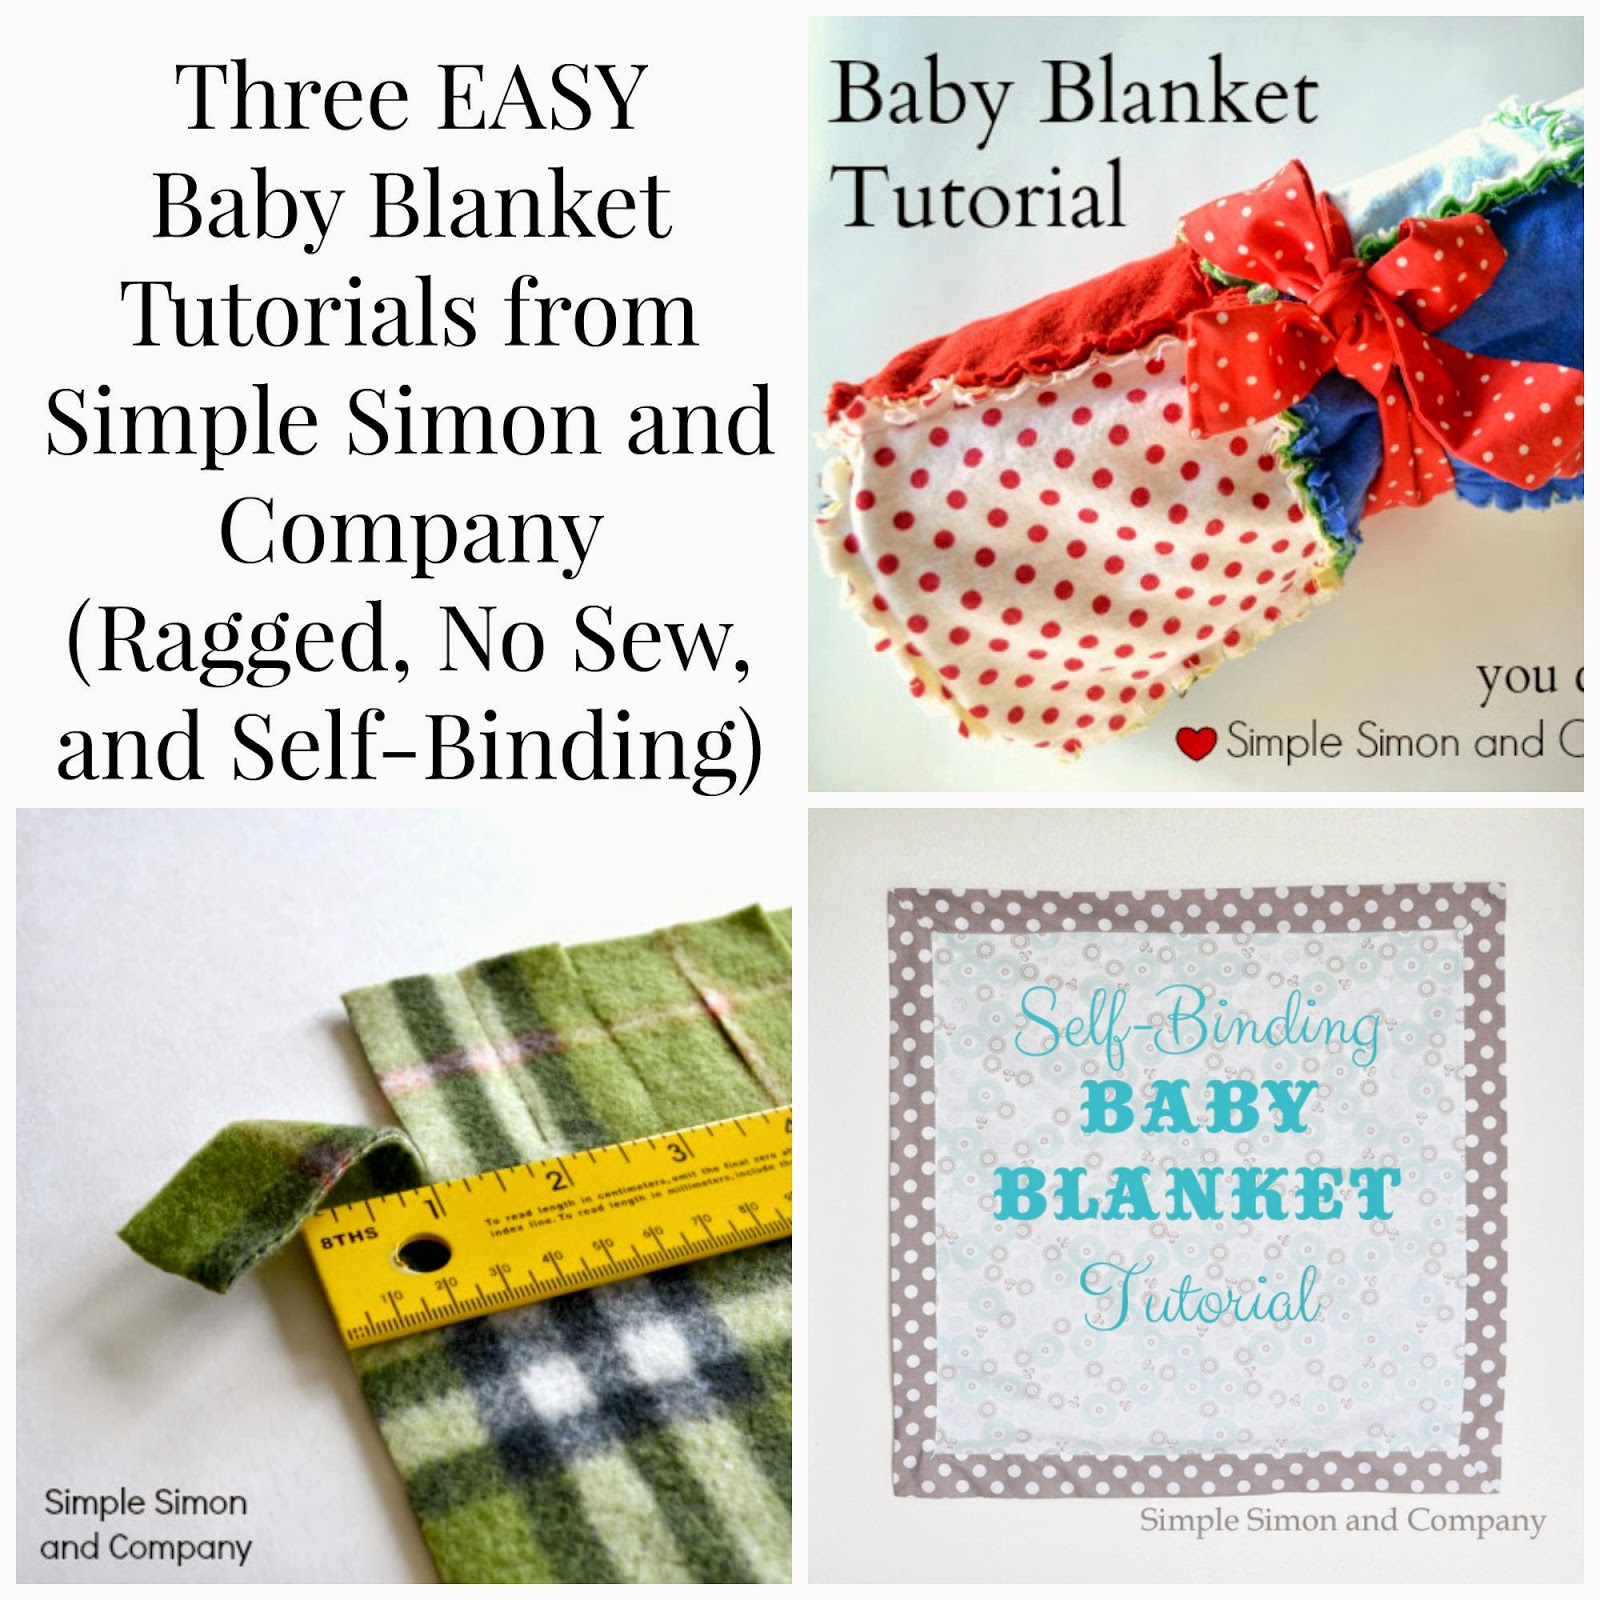 Three Easy Baby Blanket Tutorials